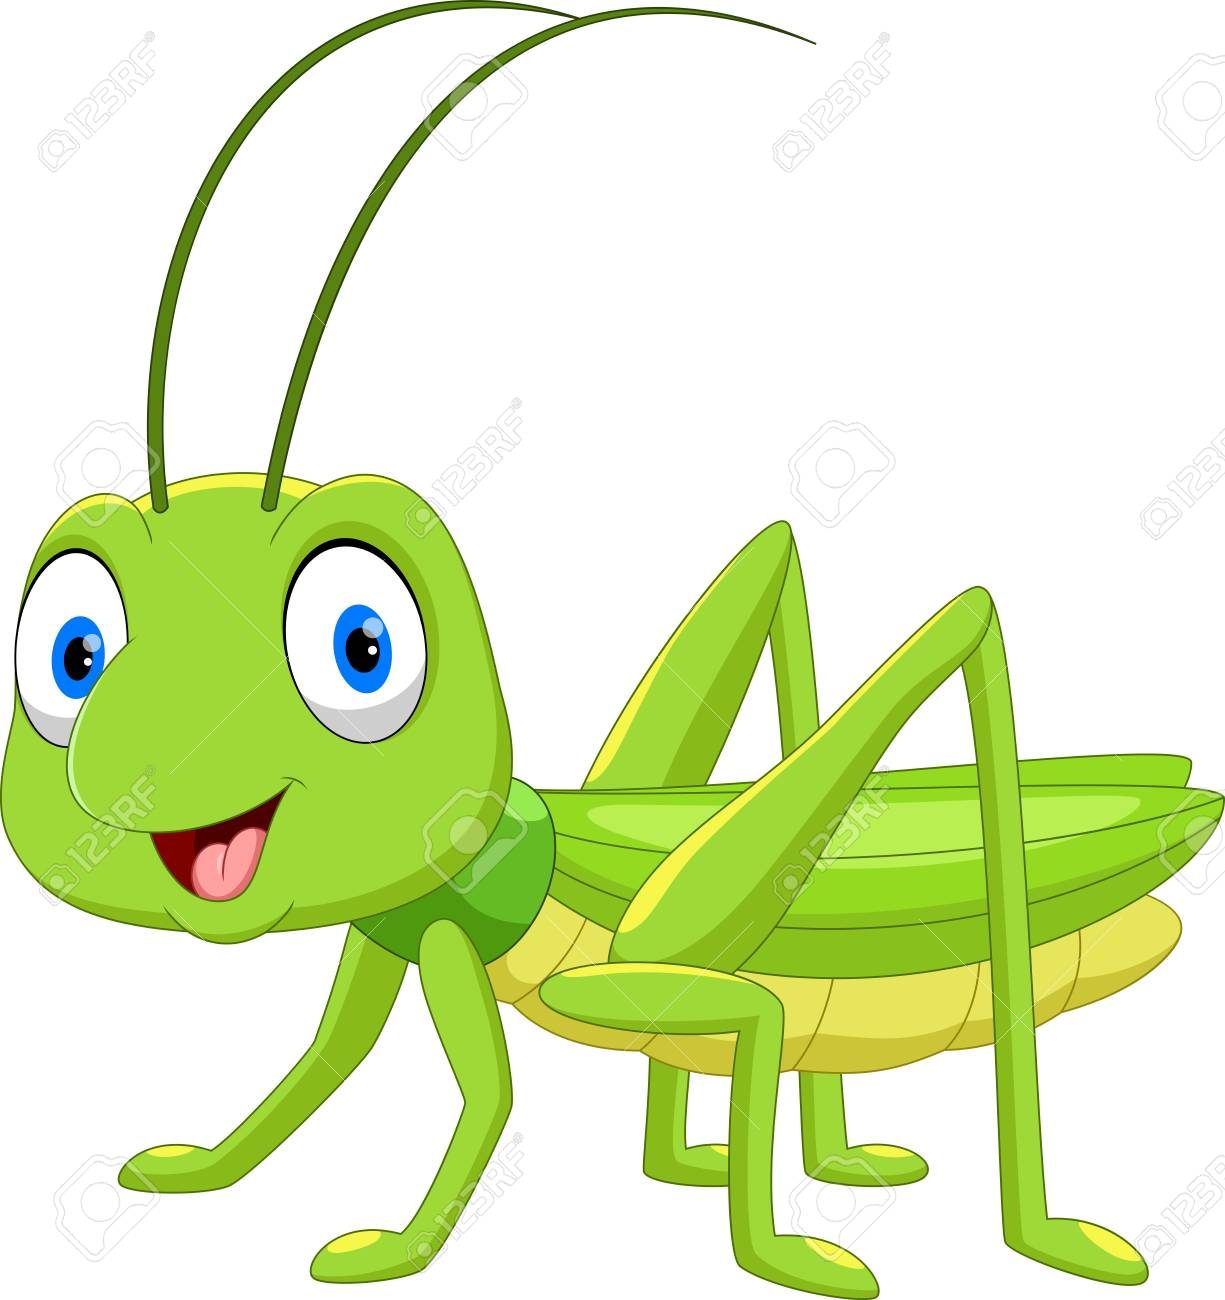 5de393003 Cute grasshopper cartoon isolated on white background Stock Vector -  104461003